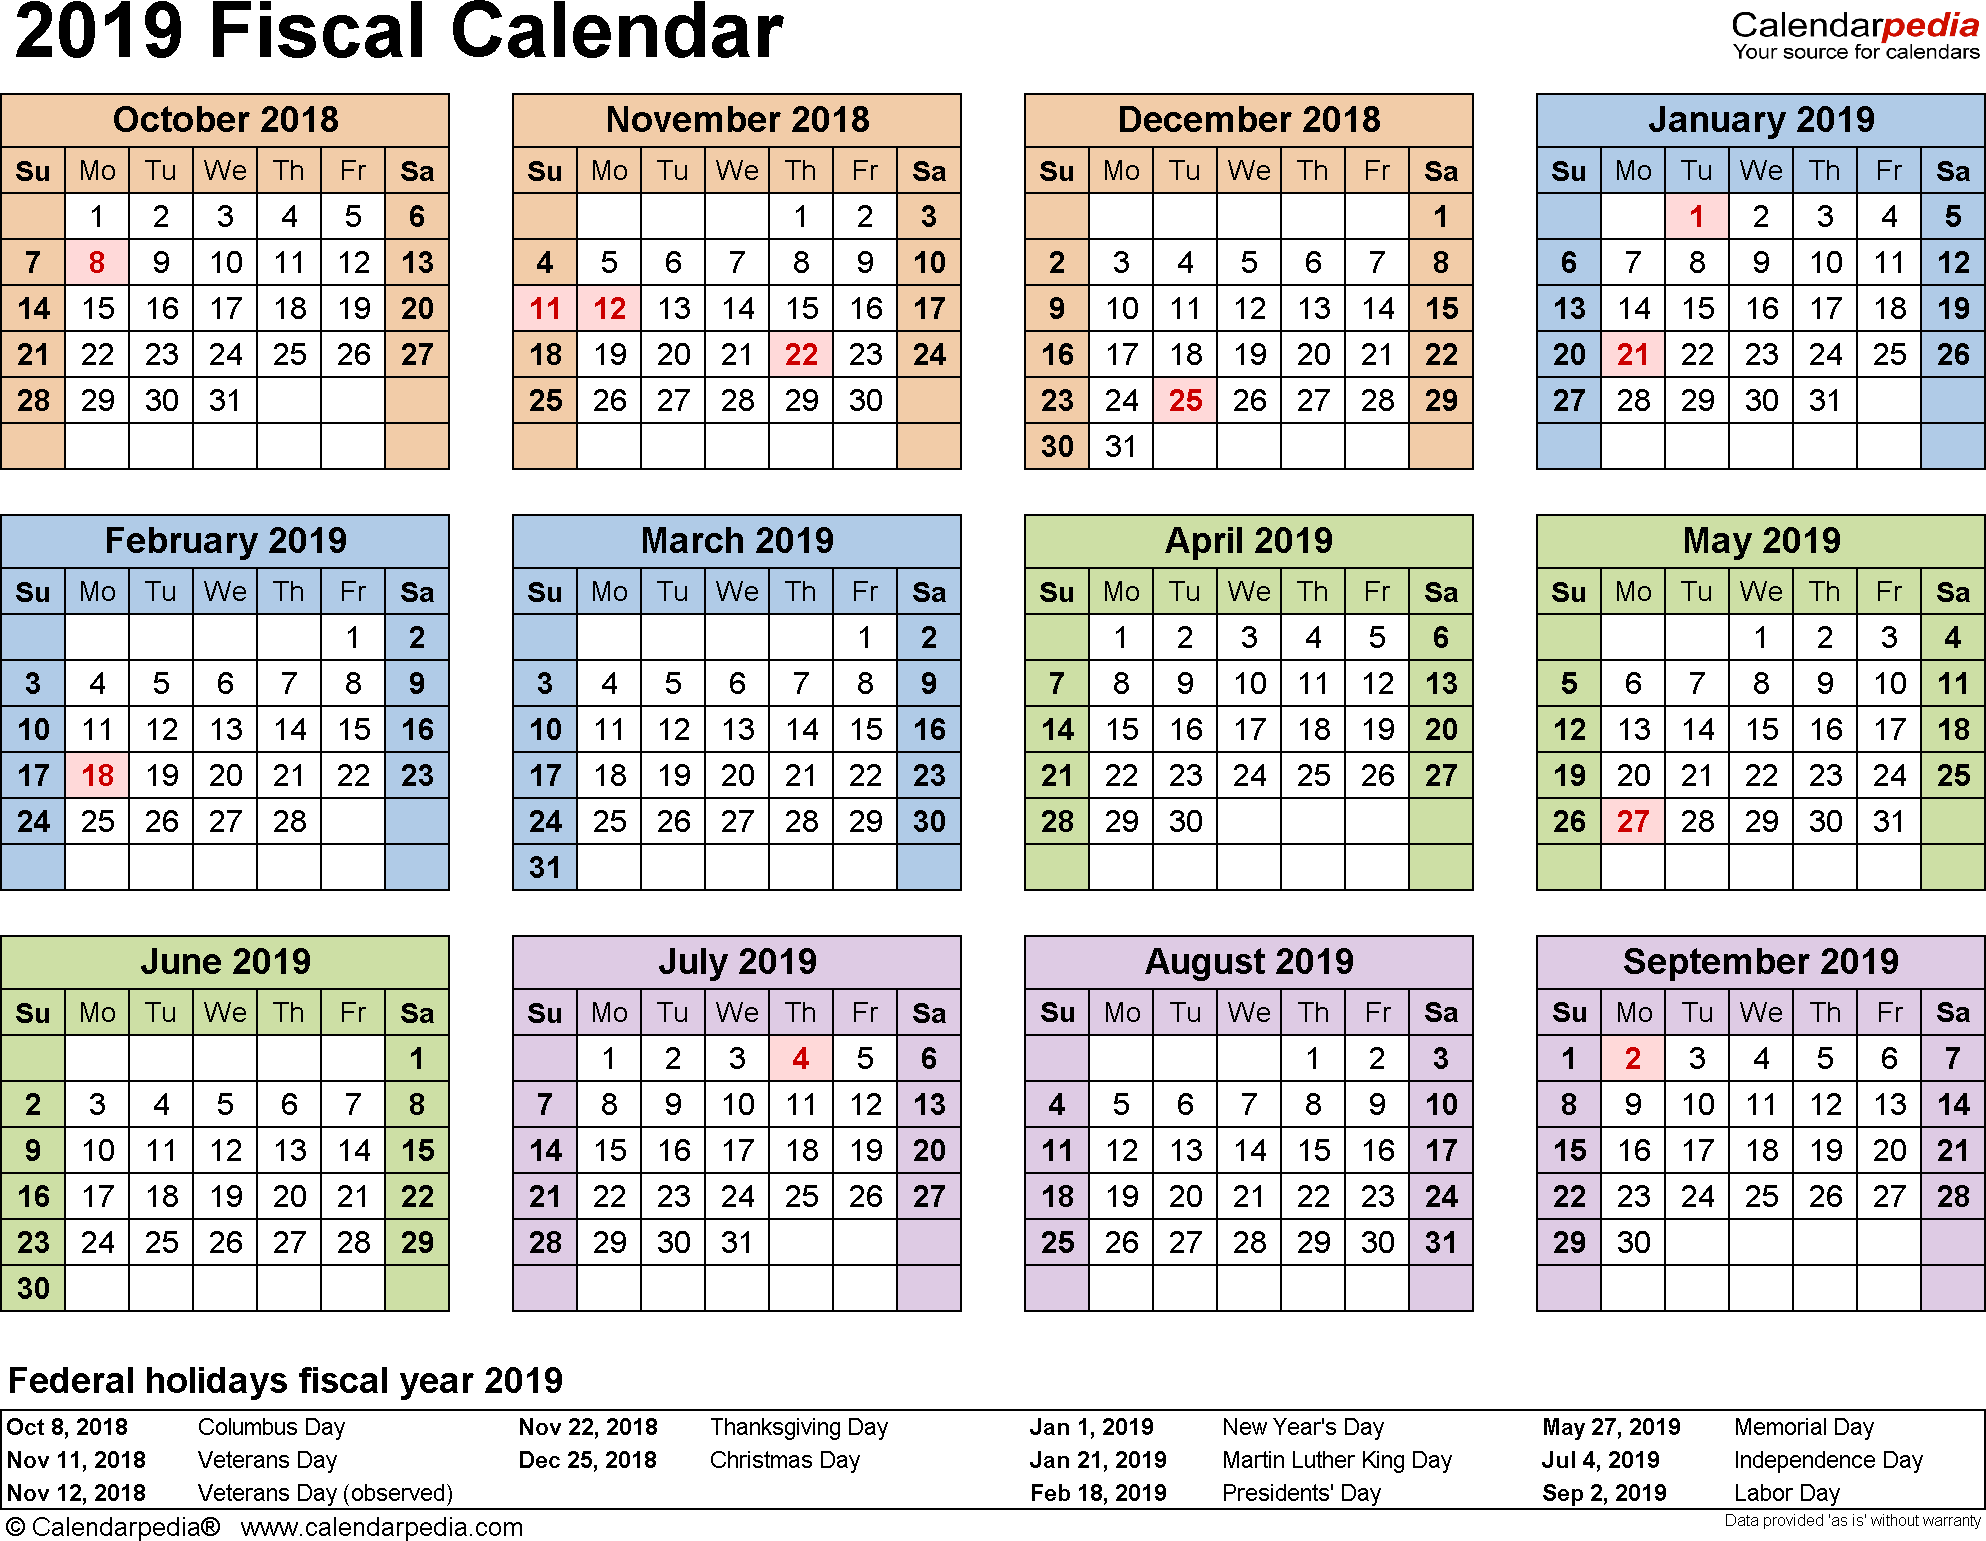 template 4 fiscal year calendar 2019 for excel landscape orientation year at a